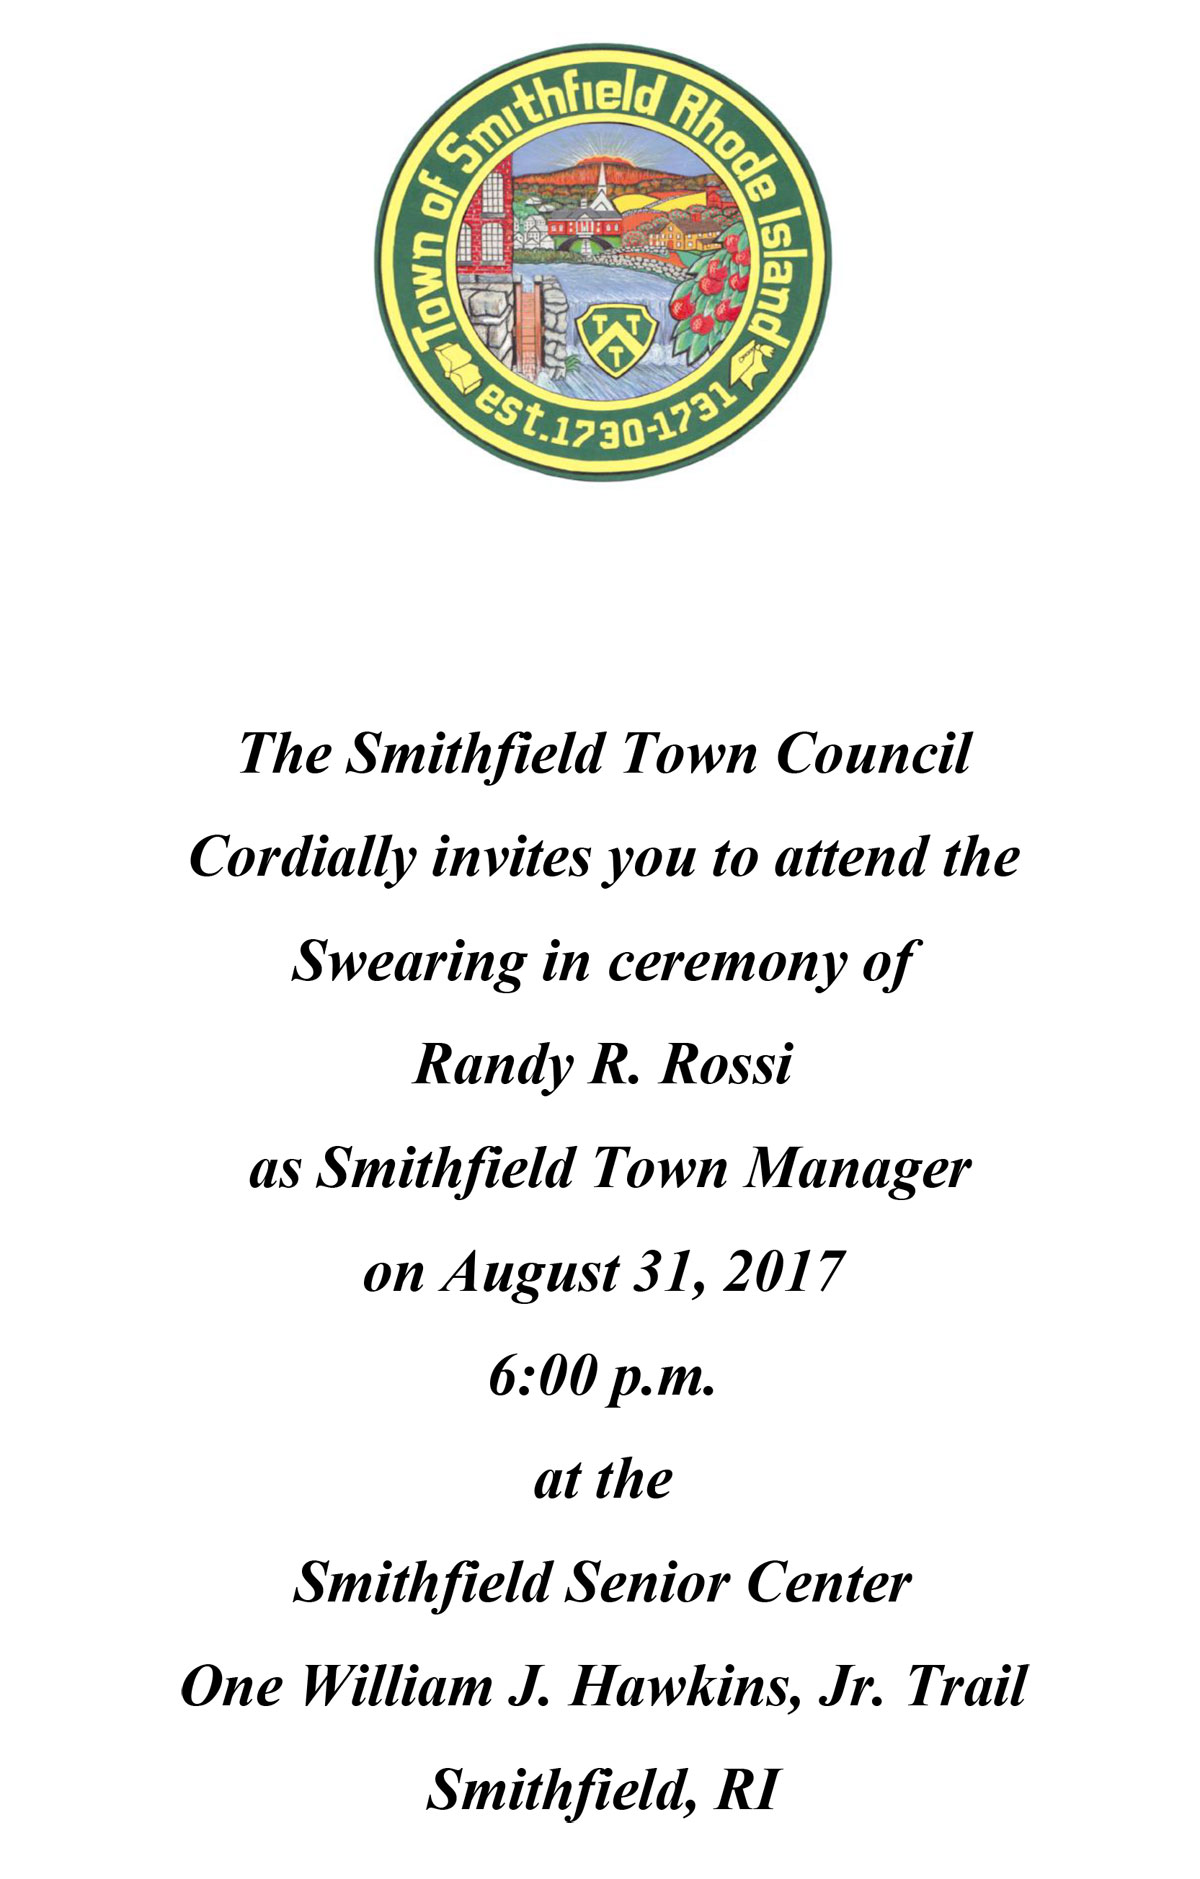 The Smithfield Town Council Cordially invites you to attend the Swearing in ceremony of Randy R. Rossi as Smithfield Town Manager on August 31, 2017 6:00 p.m. at the Smithfield Senior Center One William J. Hawkins, Jr. Trail Smithfield, RI